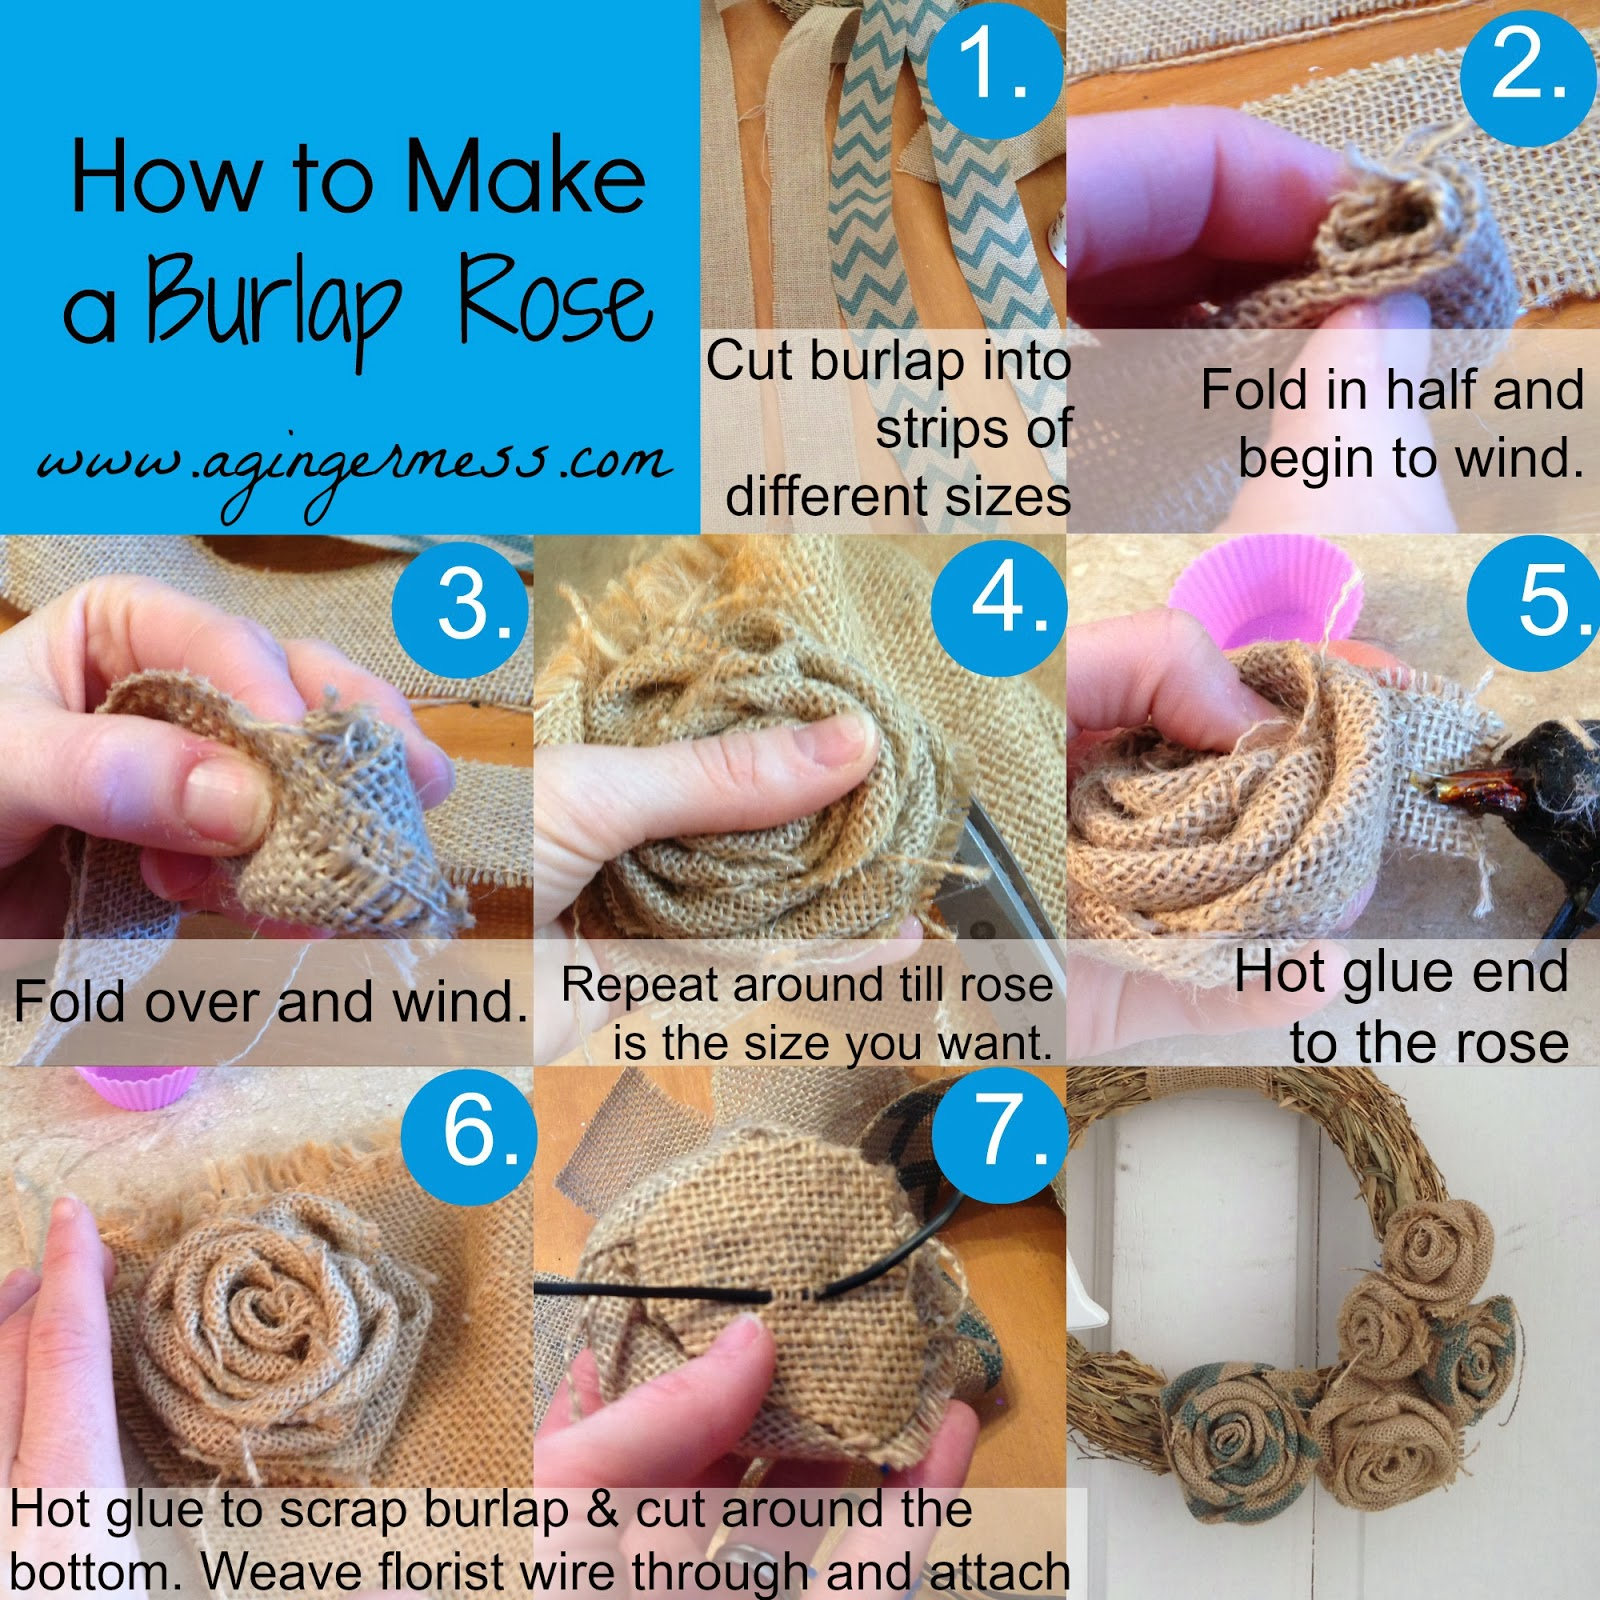 How to Make a Burlap Rose